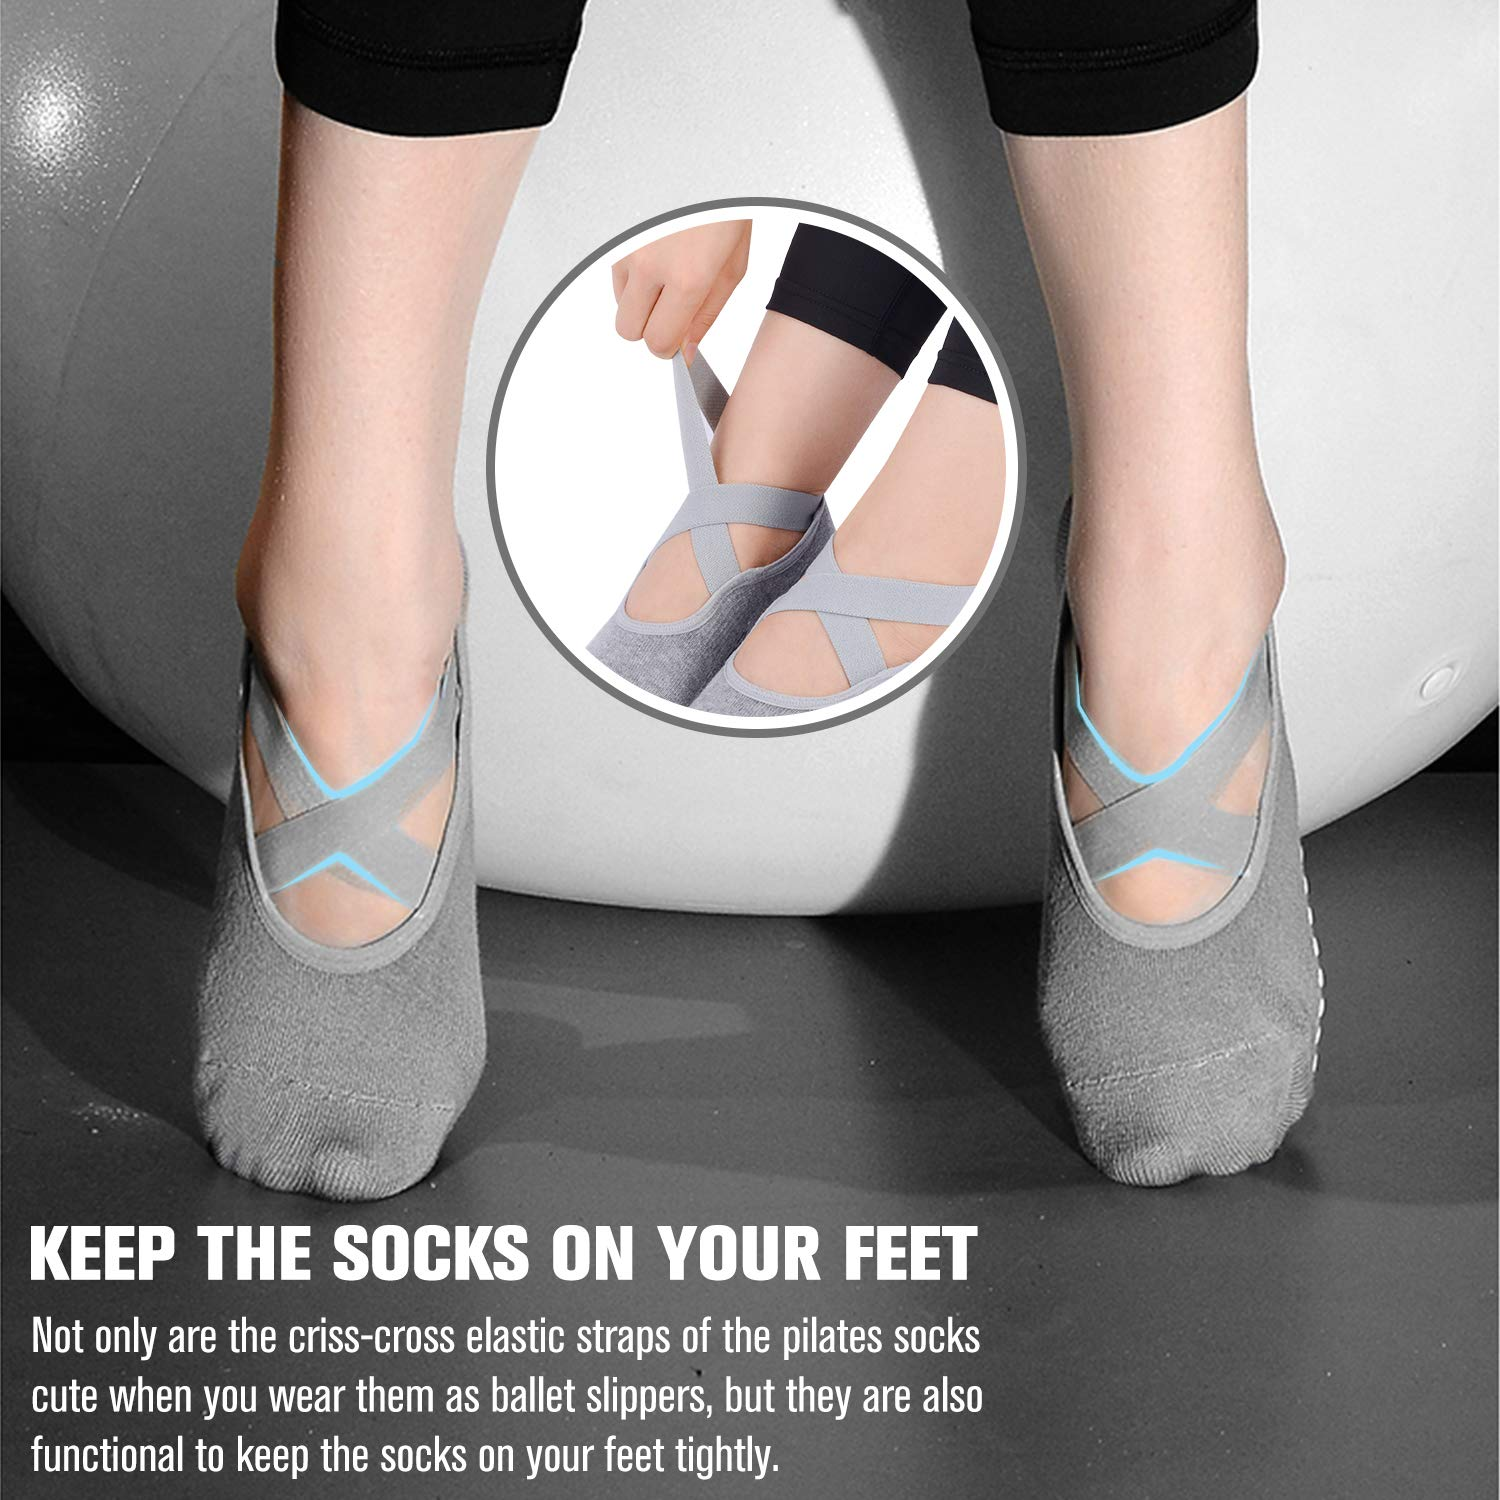 Yoga Grip Socks for Woman,Pilates Socks with Keeping-on Straps,SemiShare Non-Slip Barre Sticky Socks for Pilates Dance Pure Barre Ballet